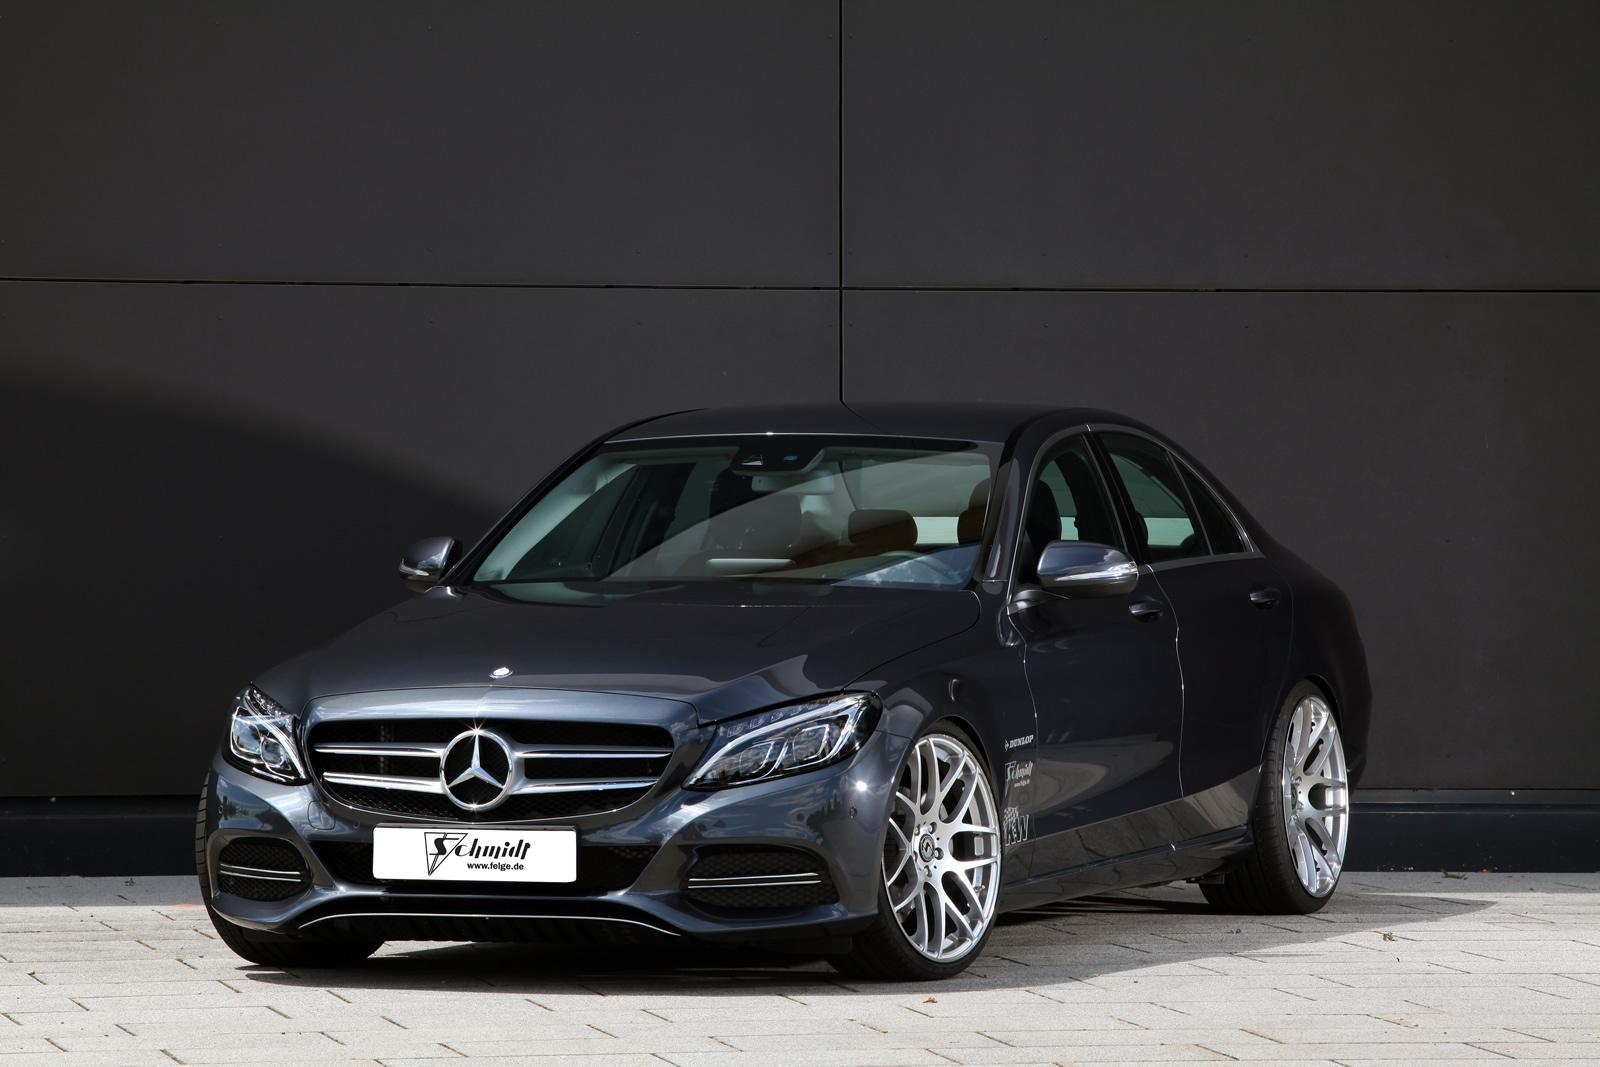 Mercedes tuning 2014 c class tuned by schmidt revolution for Mercedes benz 2014 c class price